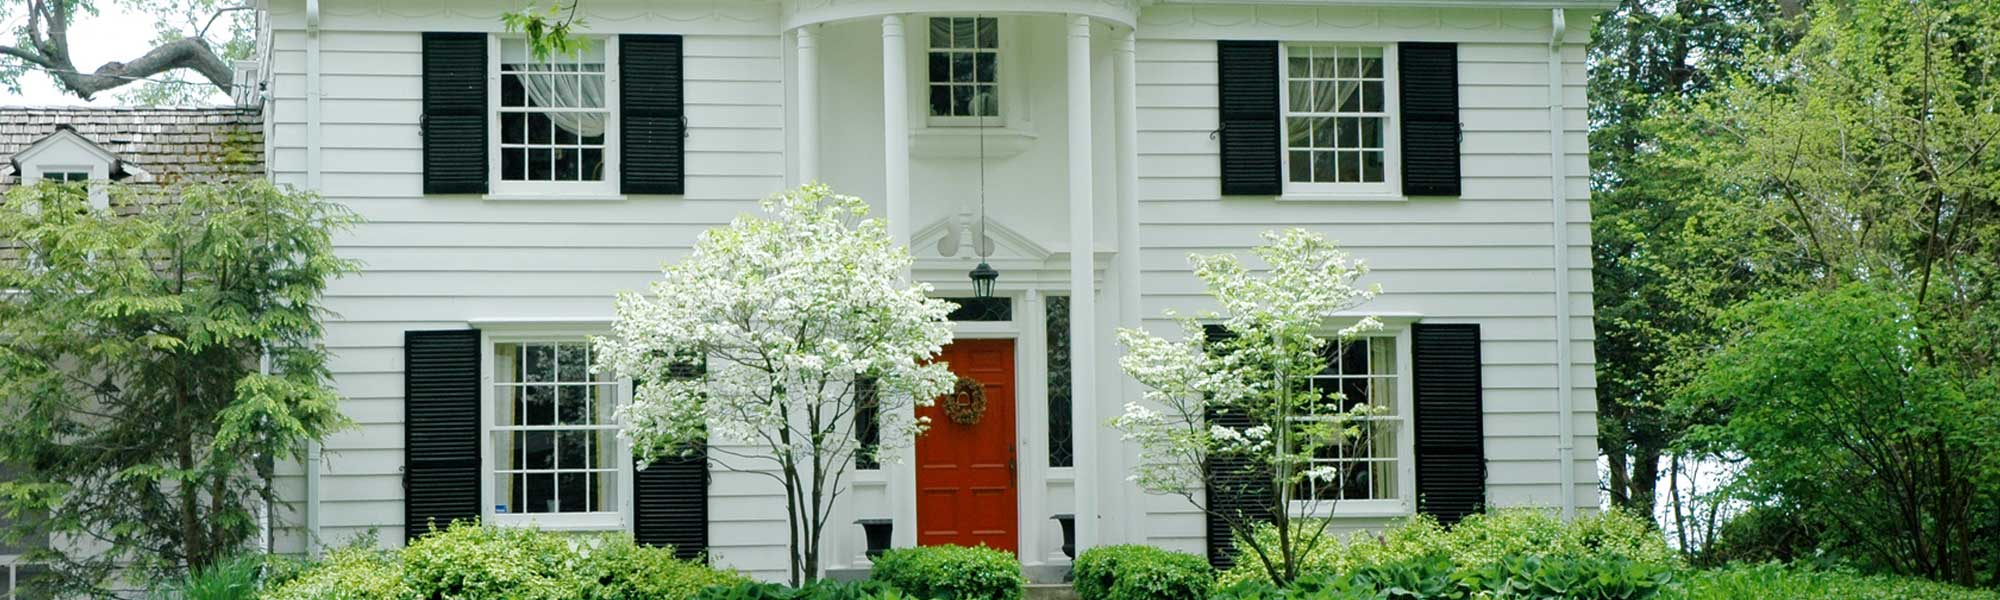 White house with red door